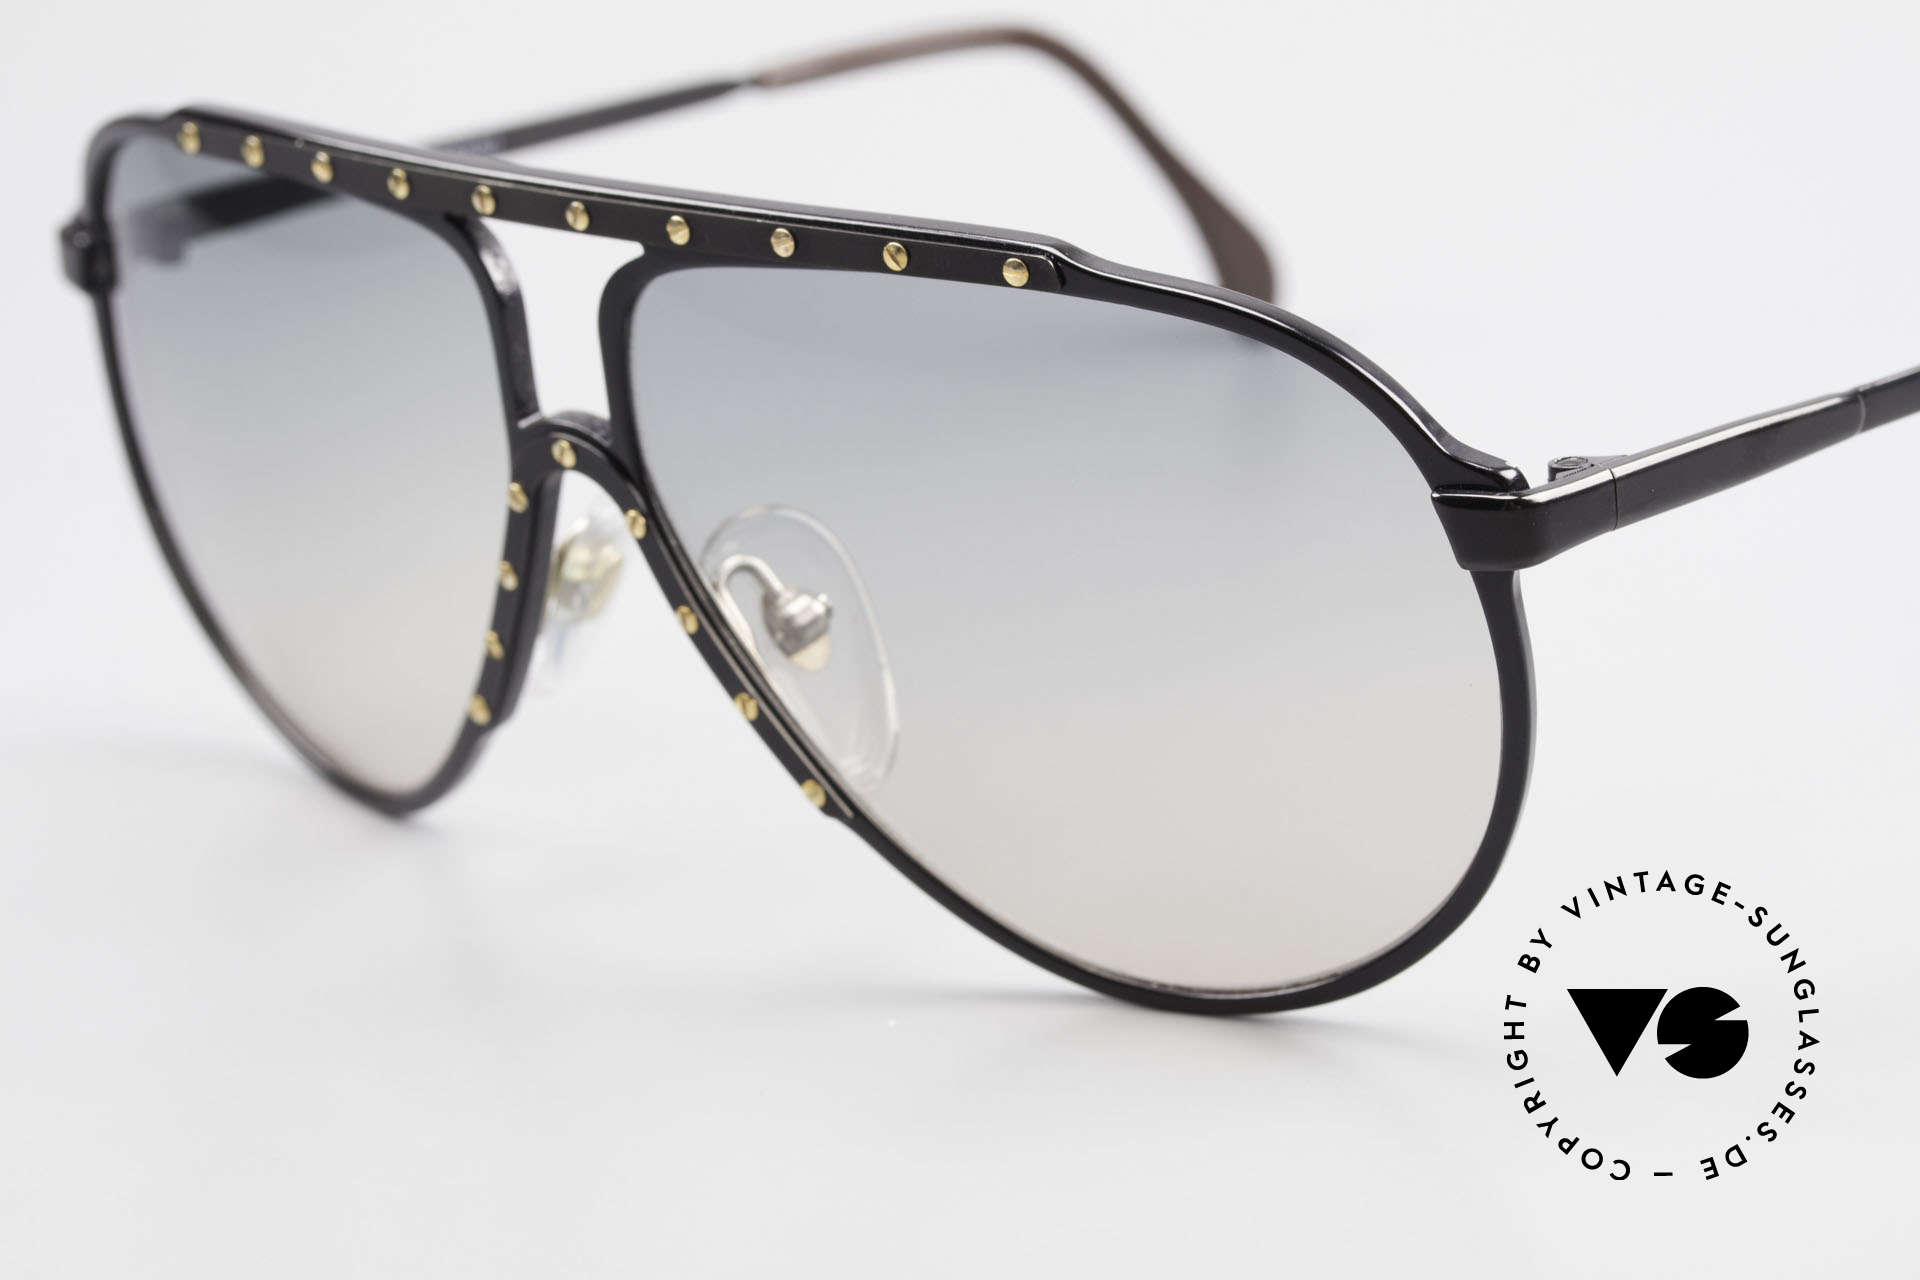 Alpina M1 Iconic Sunglasses of the 80's, never worn, New Old Stock (NOS), collector's item!, Made for Men and Women